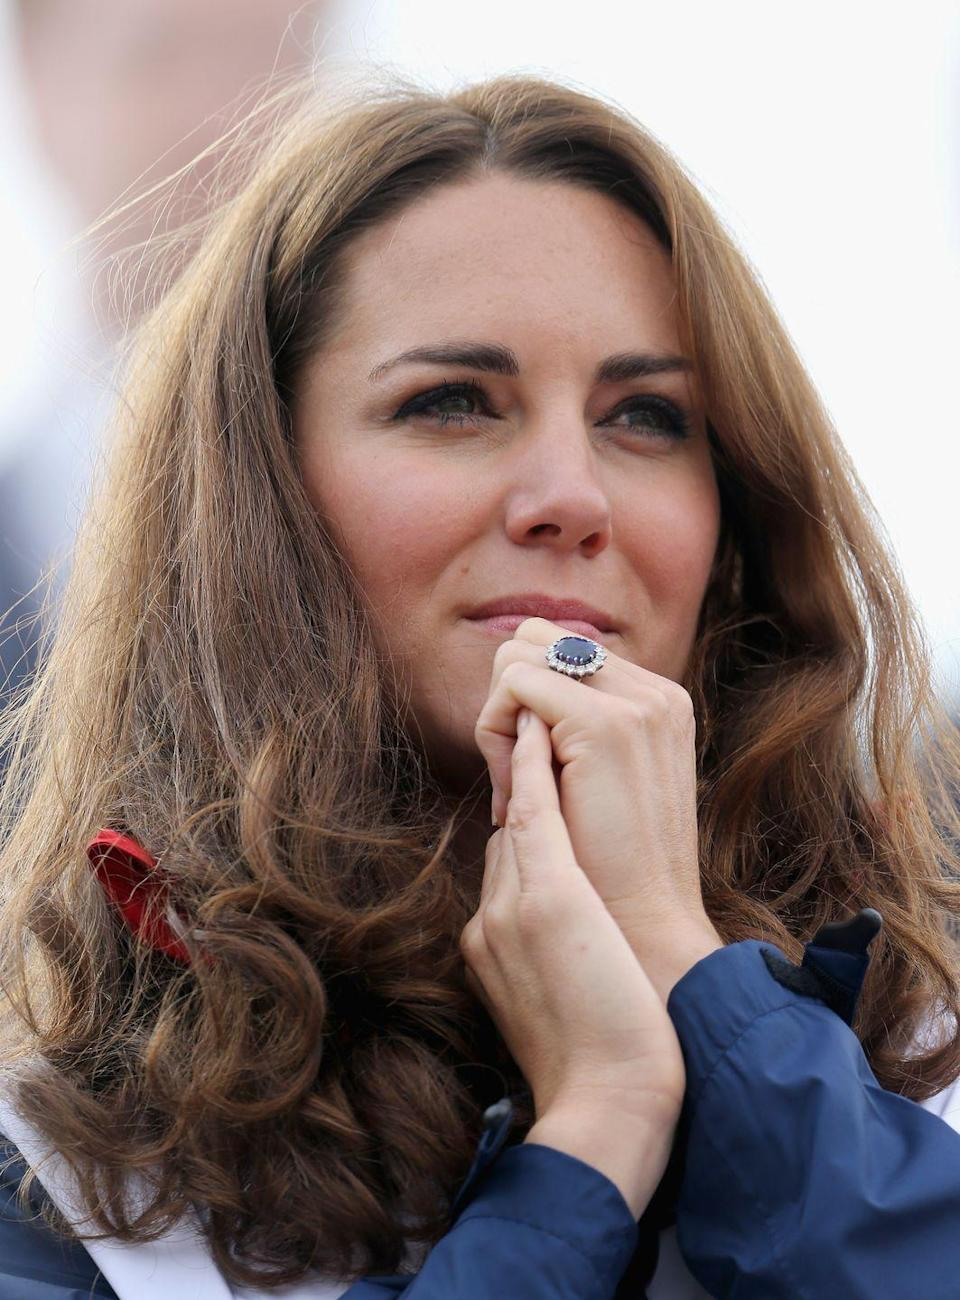 <p>When Prince William proposed to Kate Middleton in 2010, the world was delighted to see that he passed on Princess Diana's sapphire and diamond engagement ring. The Duchess has since made the iconic ring her own and wears it without fail—whether she's dressed formally or casually. </p>